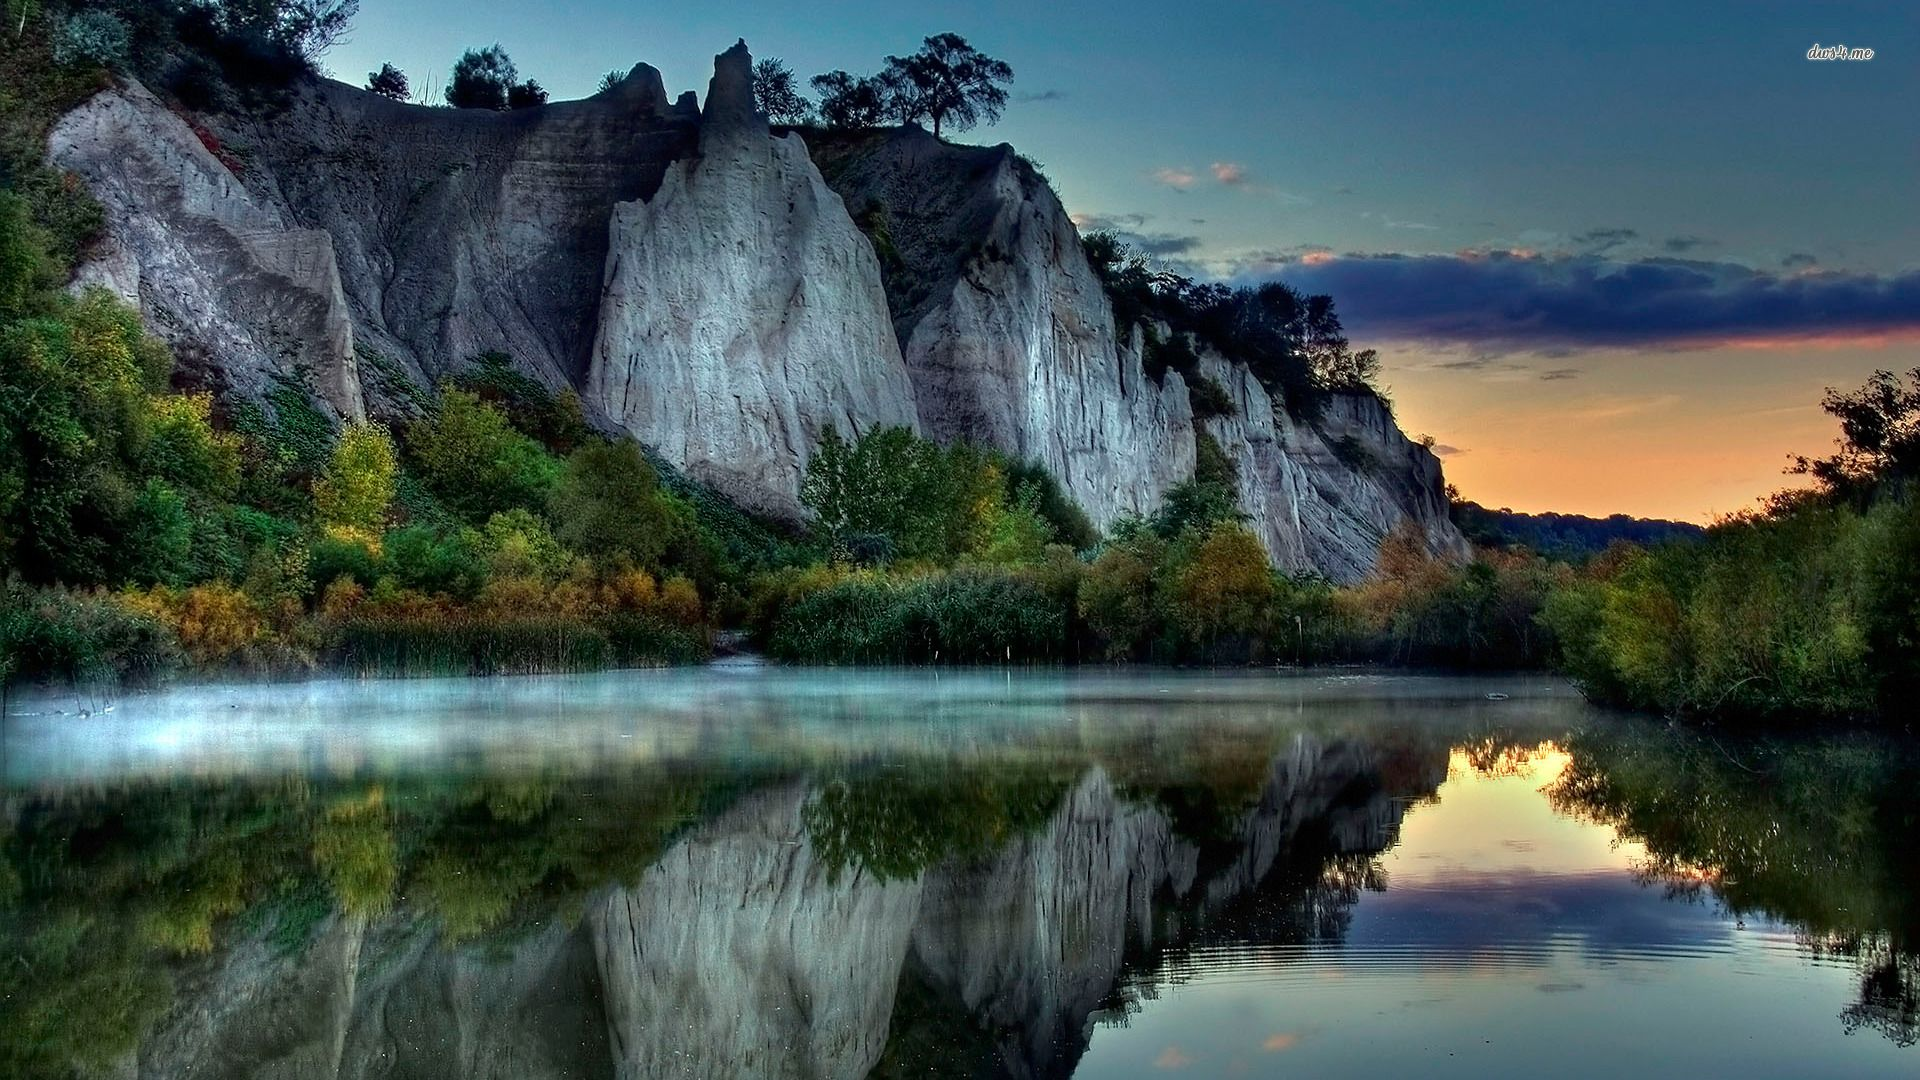 Pin by Lena on Amazing Images nd Reflections Pinterest